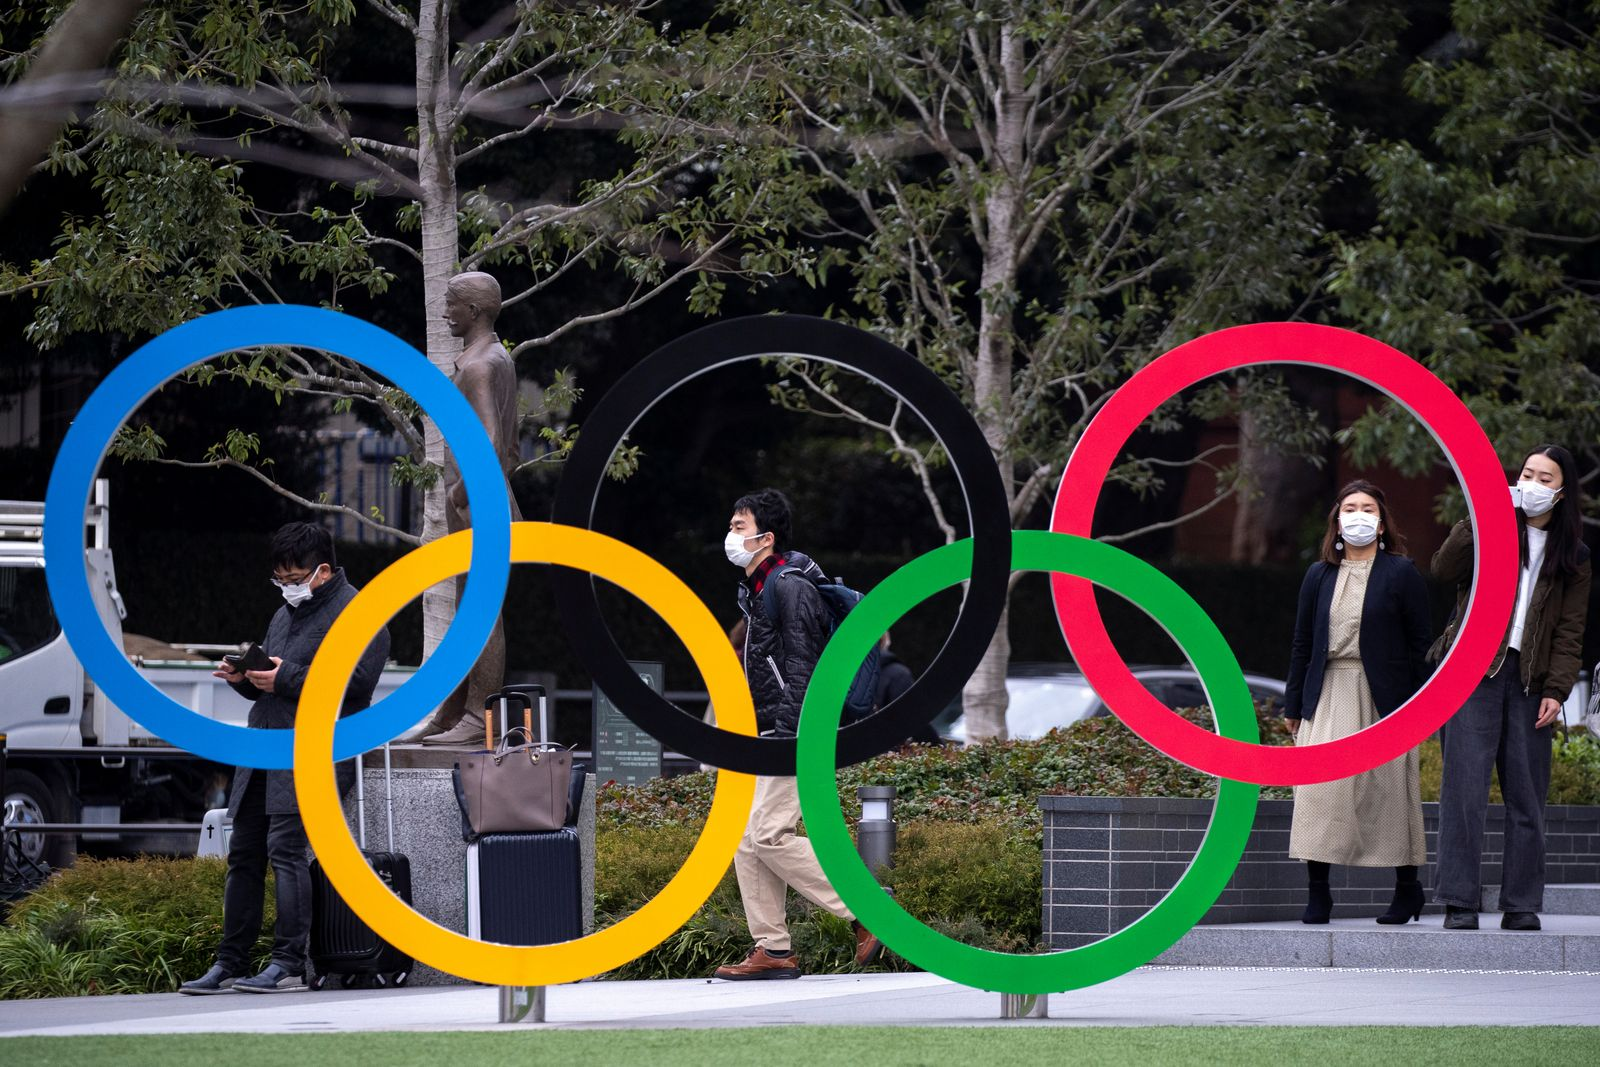 People wearing protective face masks, following an outbreak of the coronavirus, are seen next to the Olympic rings in front of the Japan Olympic Museum in Tokyo